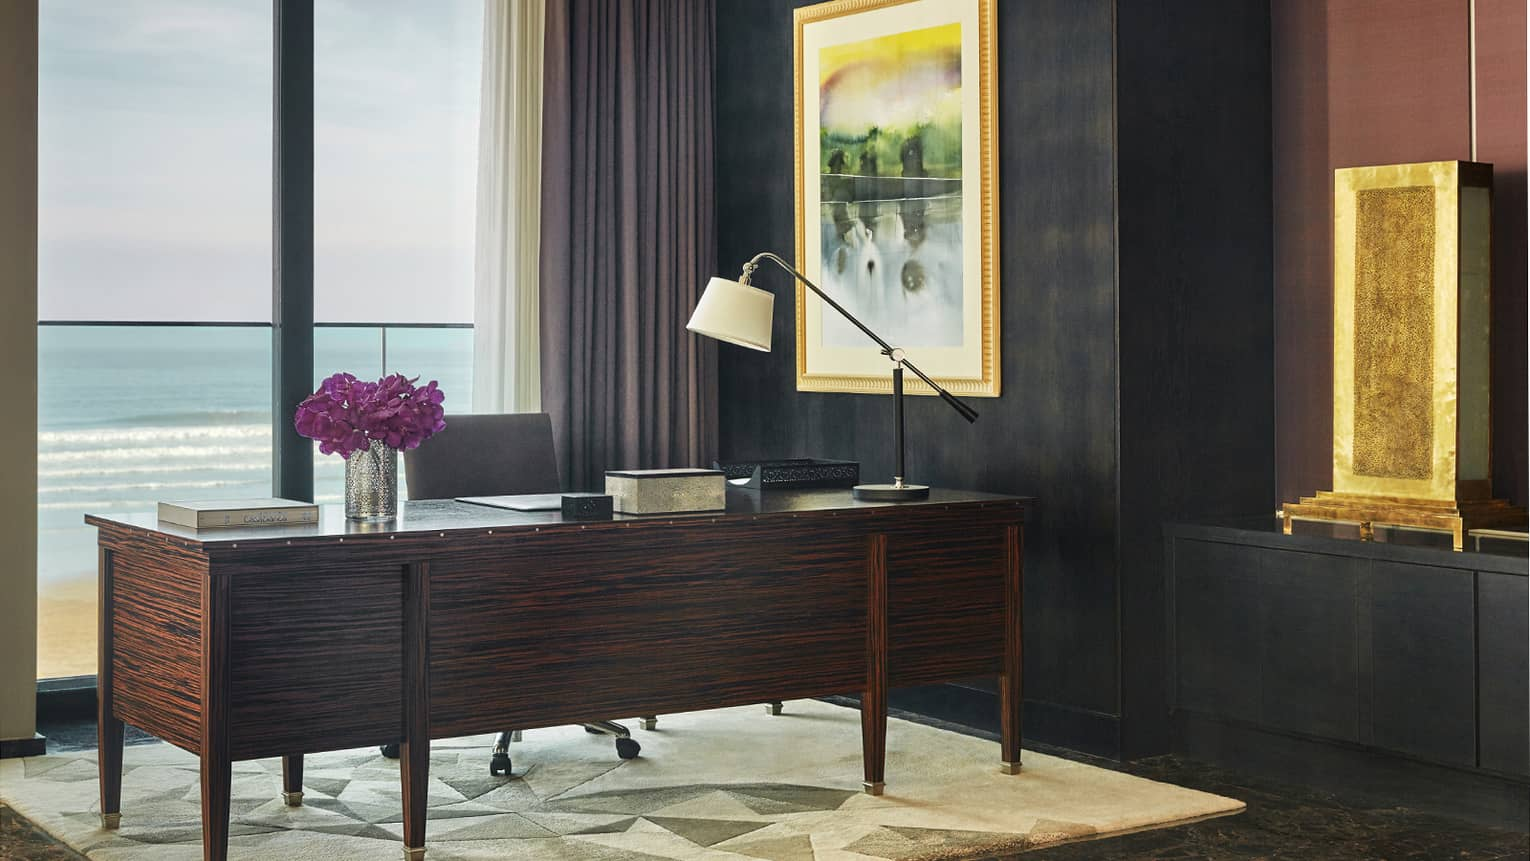 Royal Suite Ocean View office with large executive desk, lamp and purple flowers